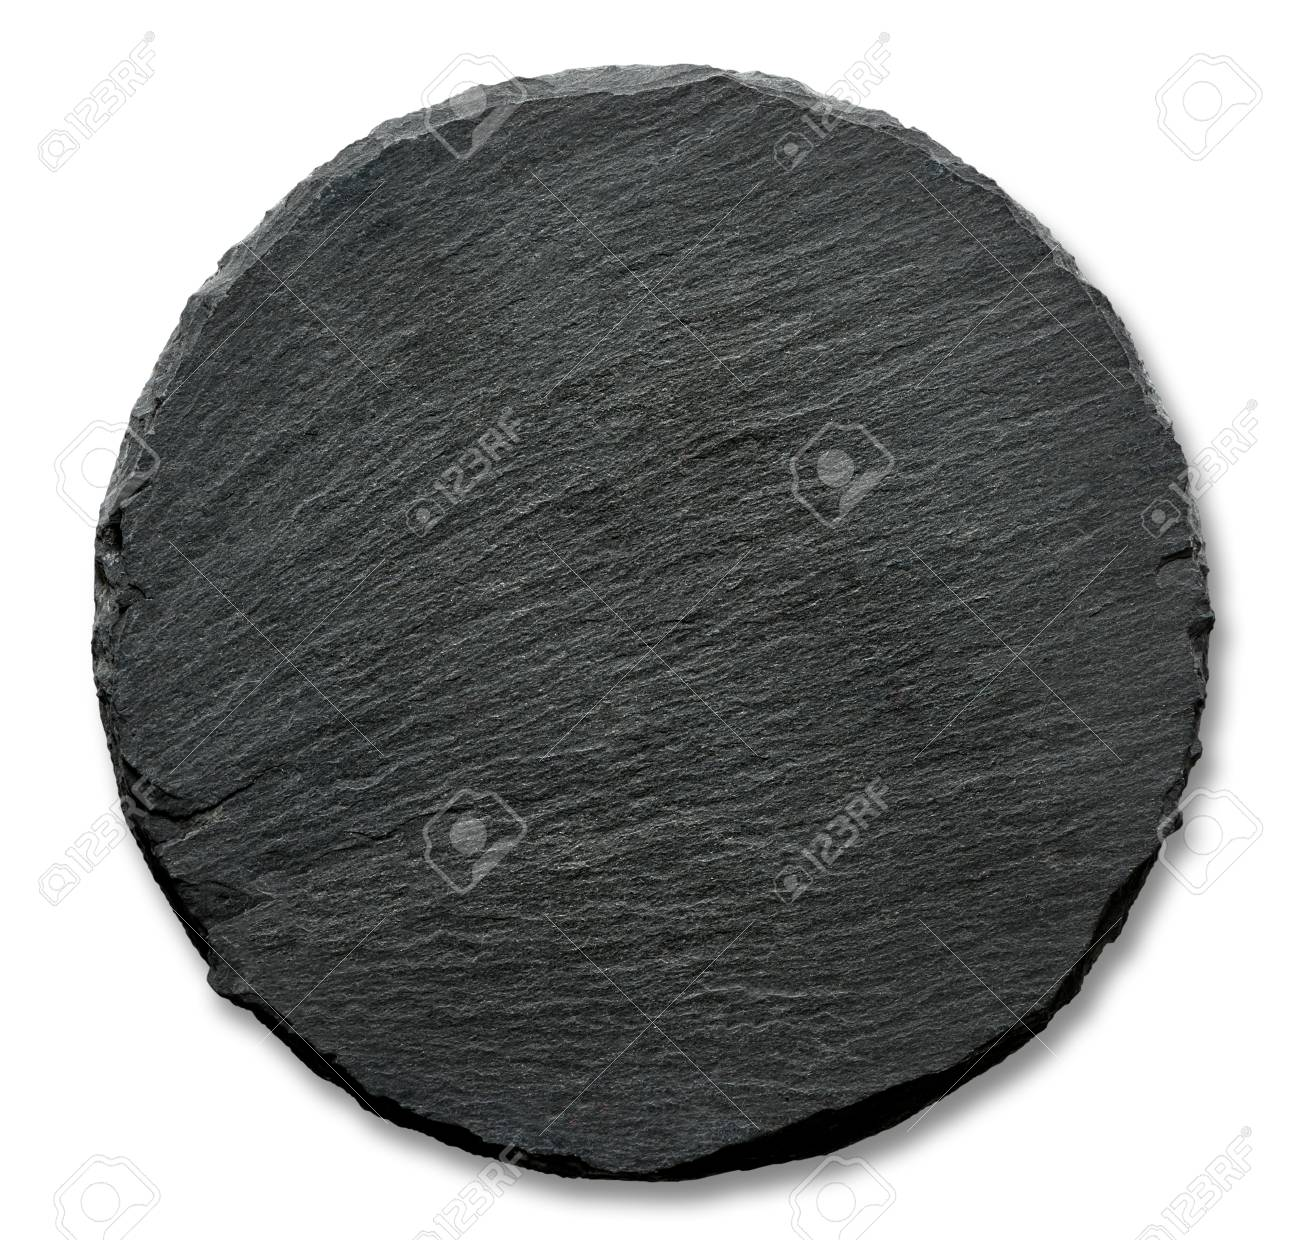 Round slate stand isolated on a white background - 49177181